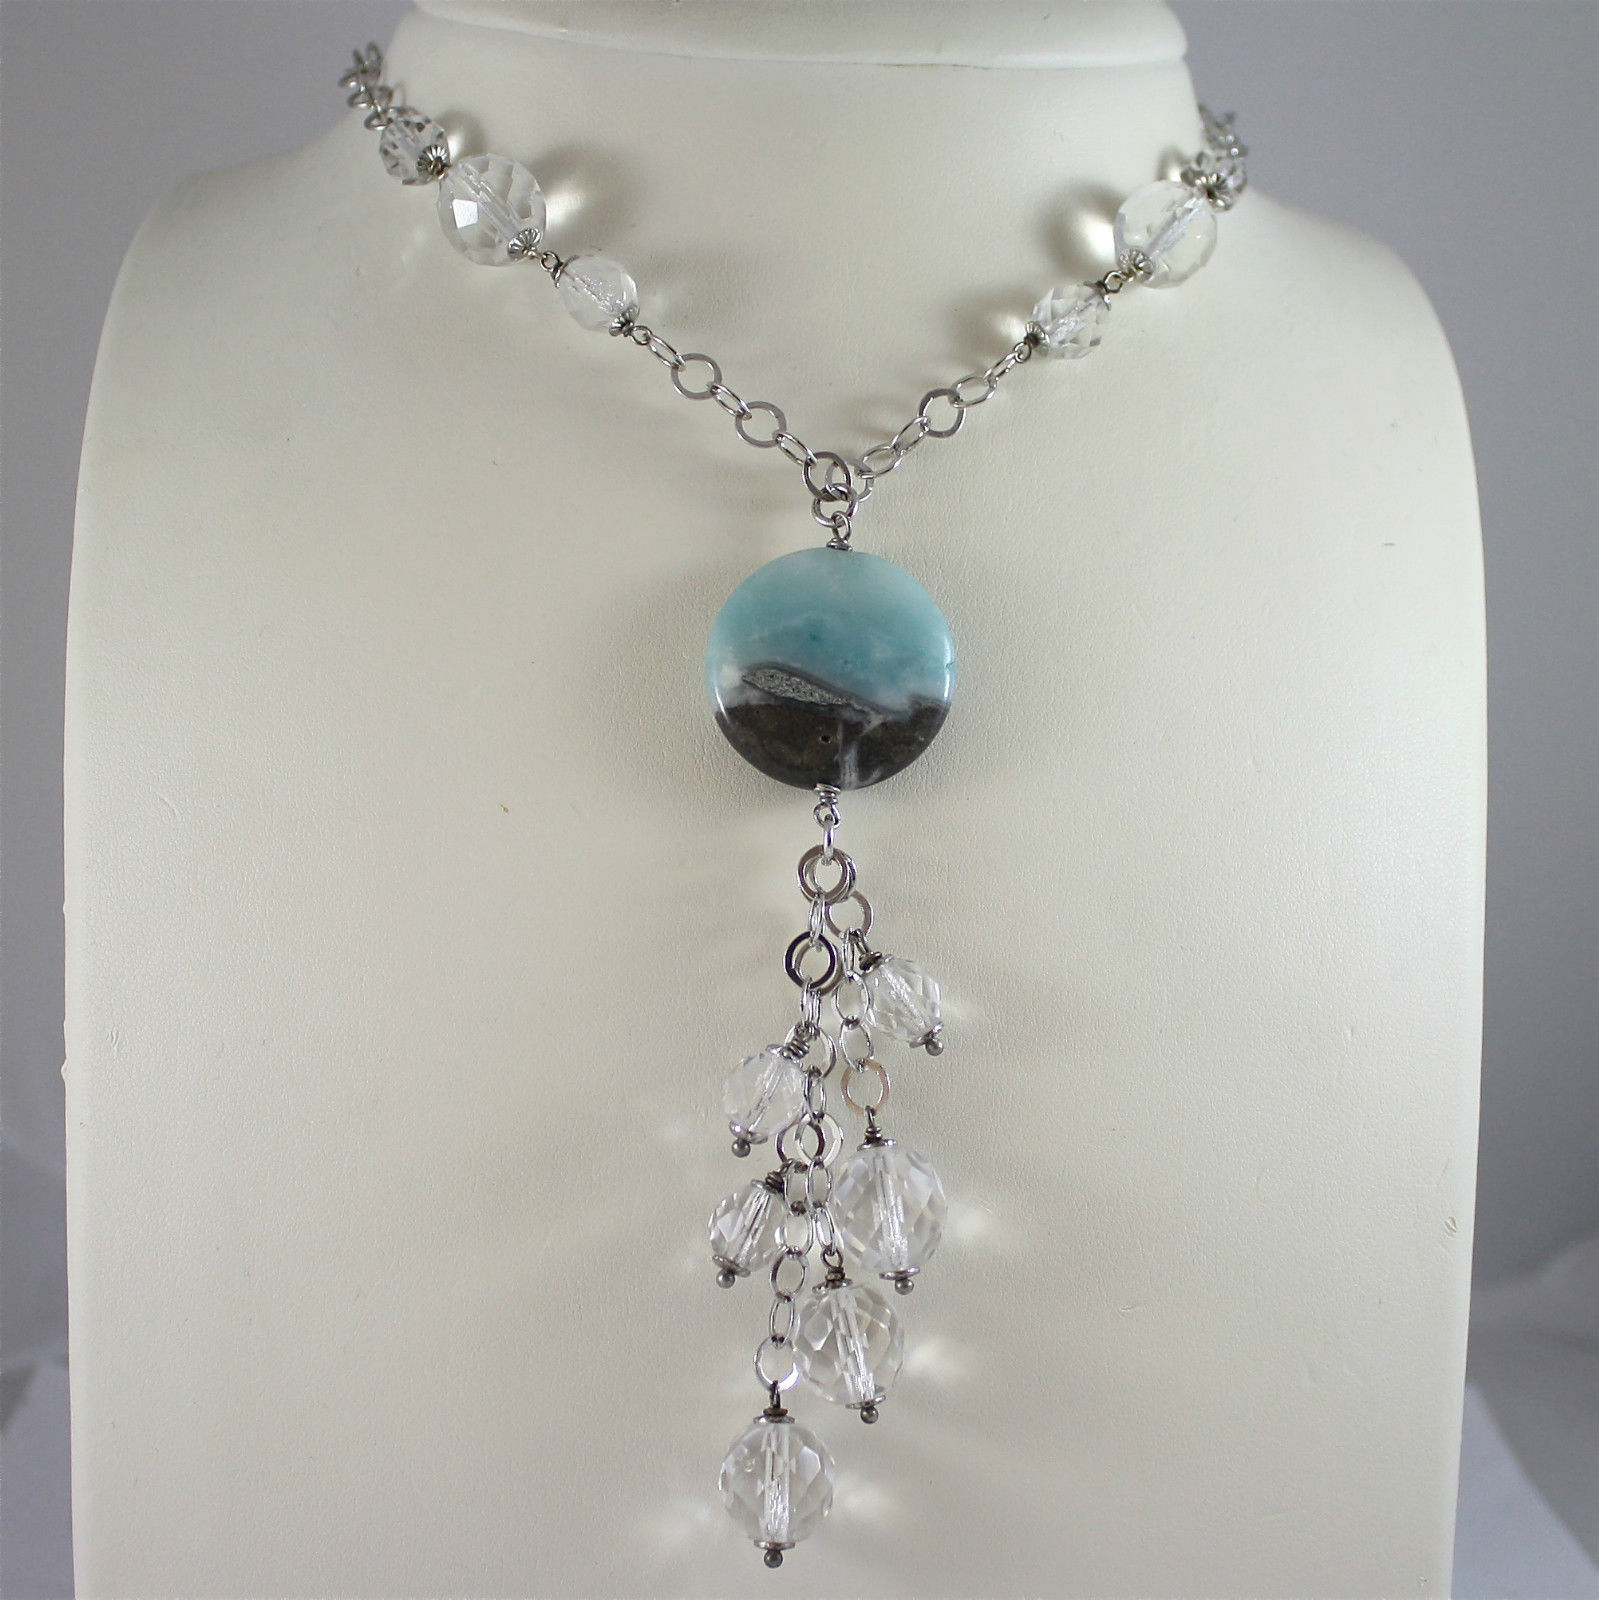 .925 RHODIUM SILVER NECKLACE WITH CRISTALS, SPOTTED QUARTZ PENDANT.